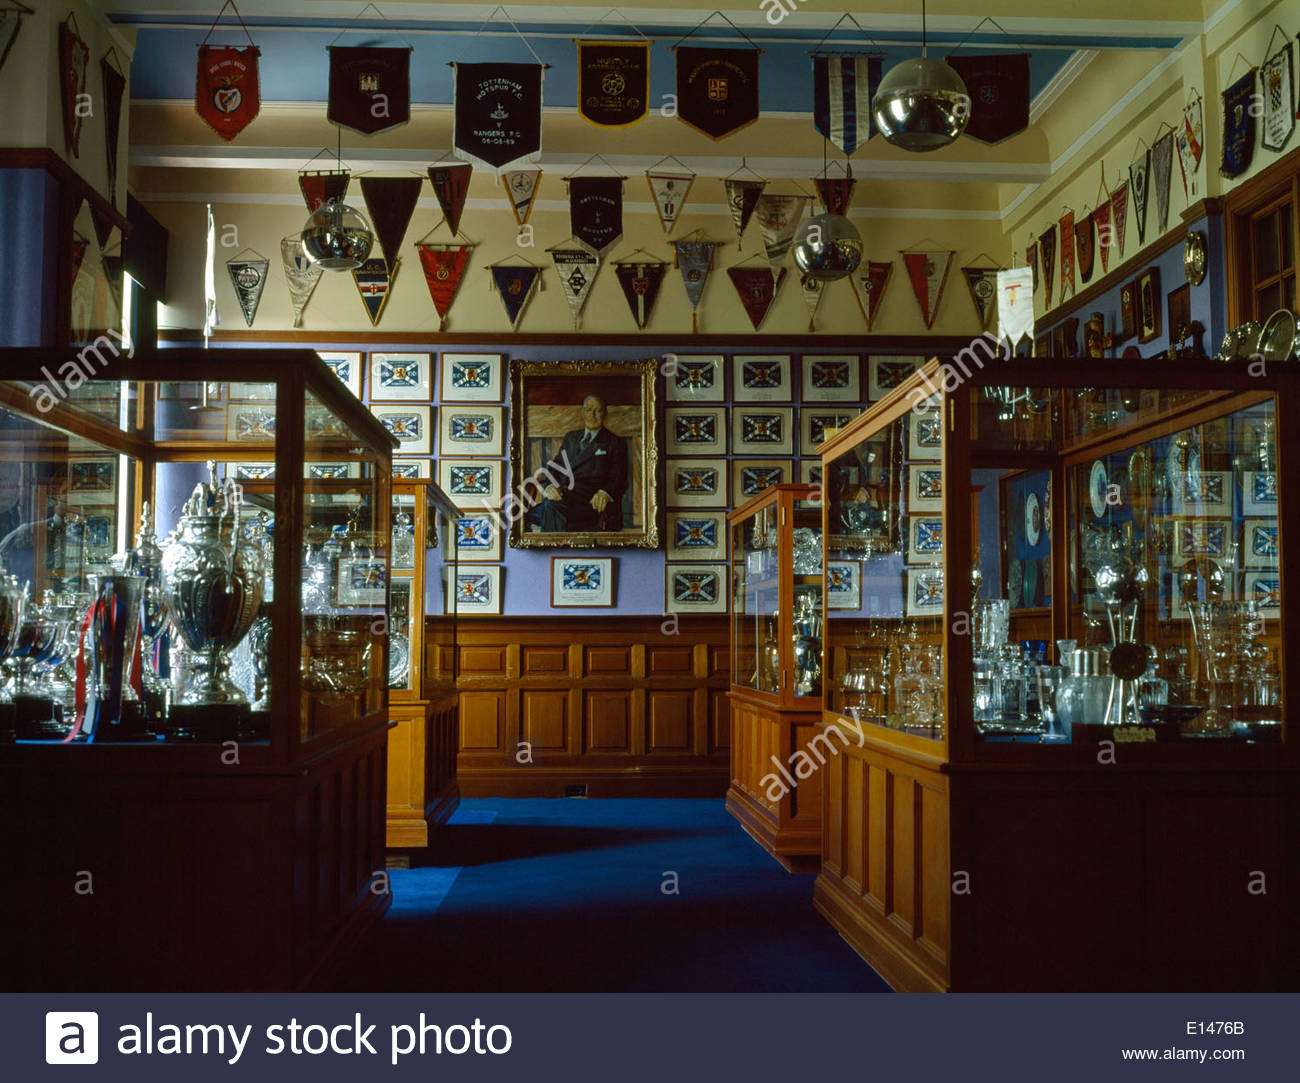 The Regal Trophy Room At Ibrox, Home Of Glasgow Rangers Football Club,  Scotland.